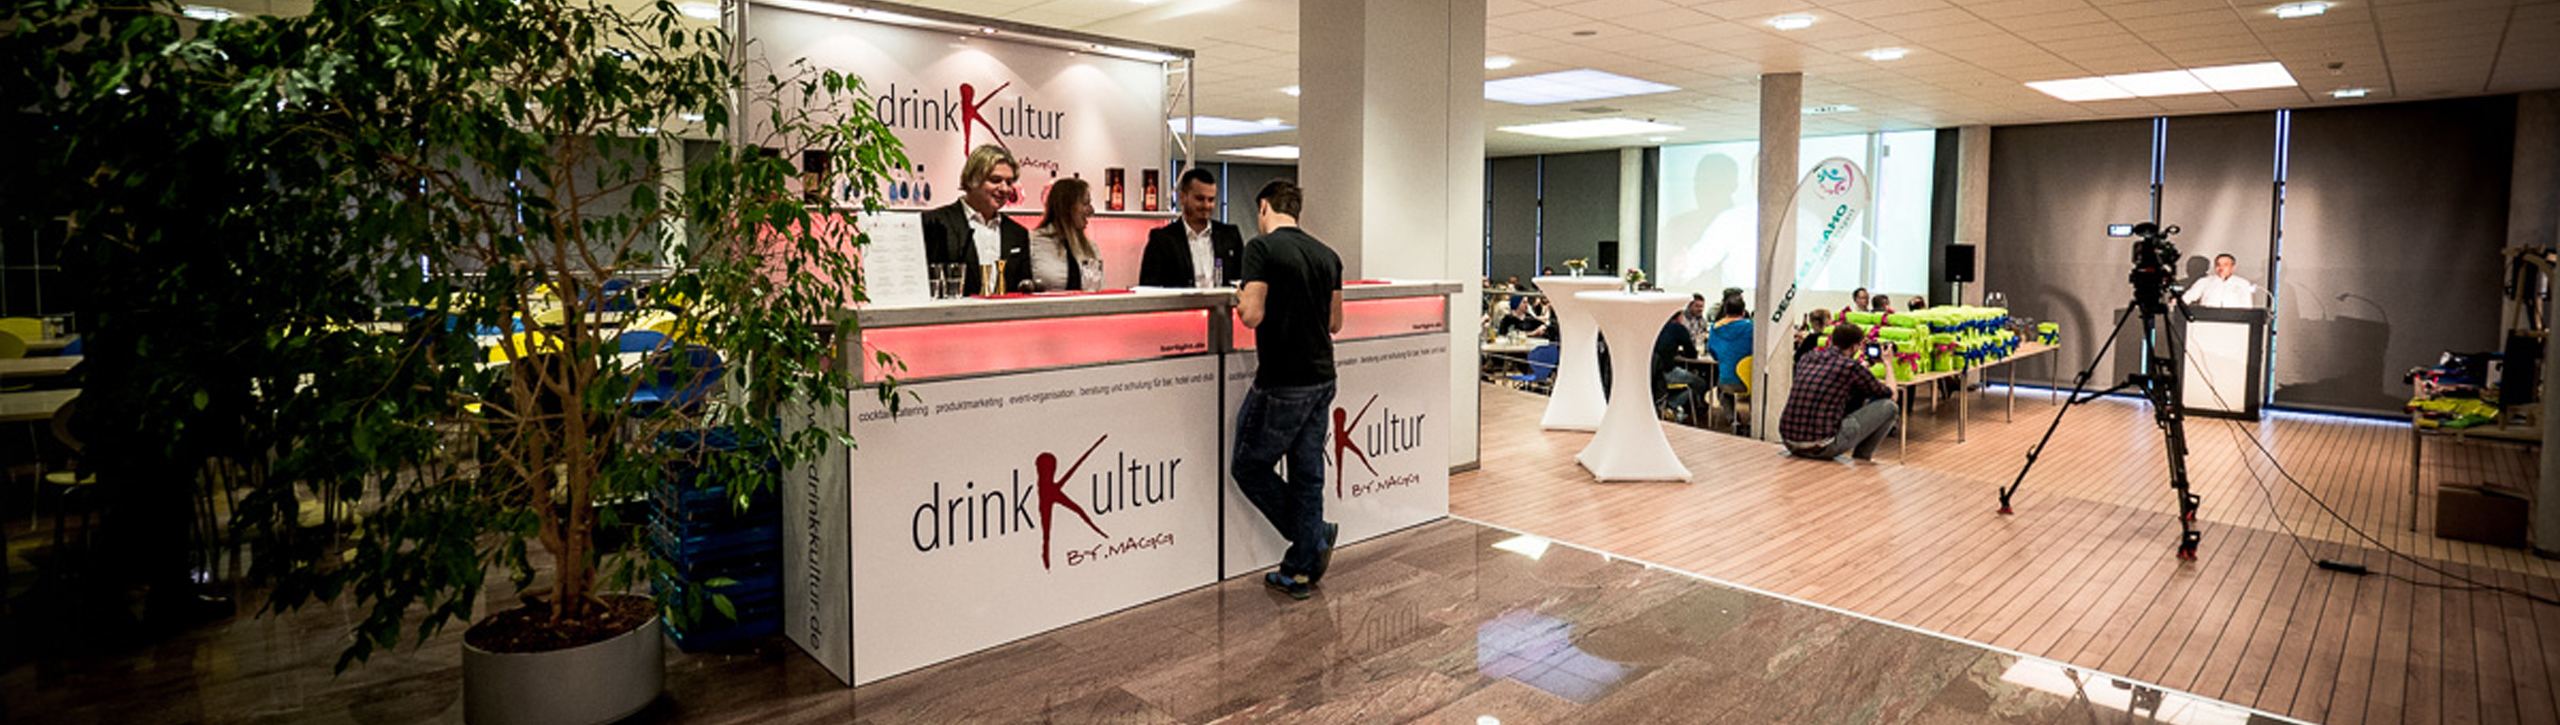 drinkkultur - Eventorganisation